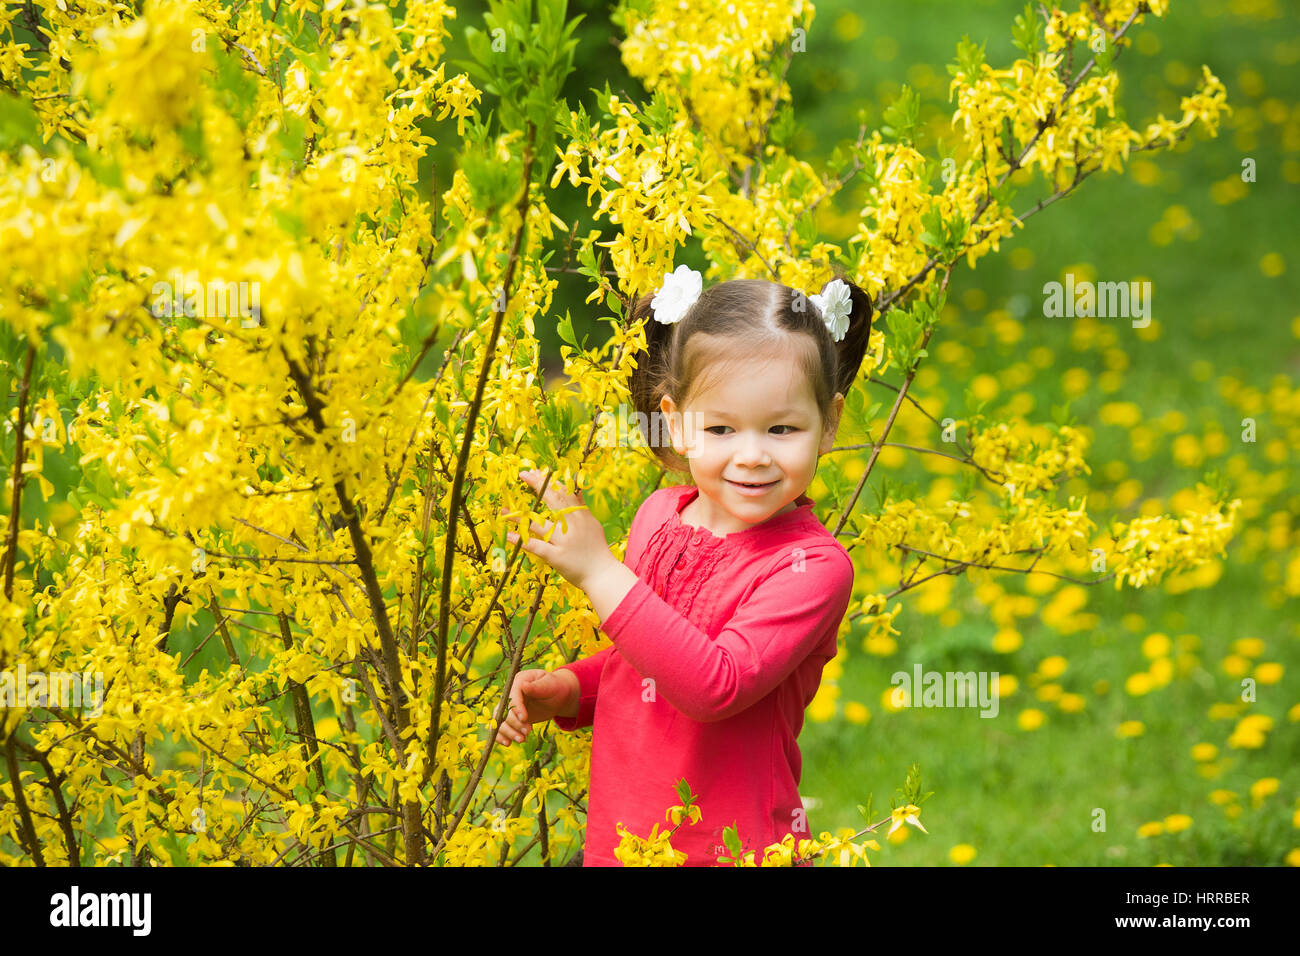 Cute funny girl of four years old playing cheerfully outside in spring sunny city park. Horizontal color photography. - Stock Image